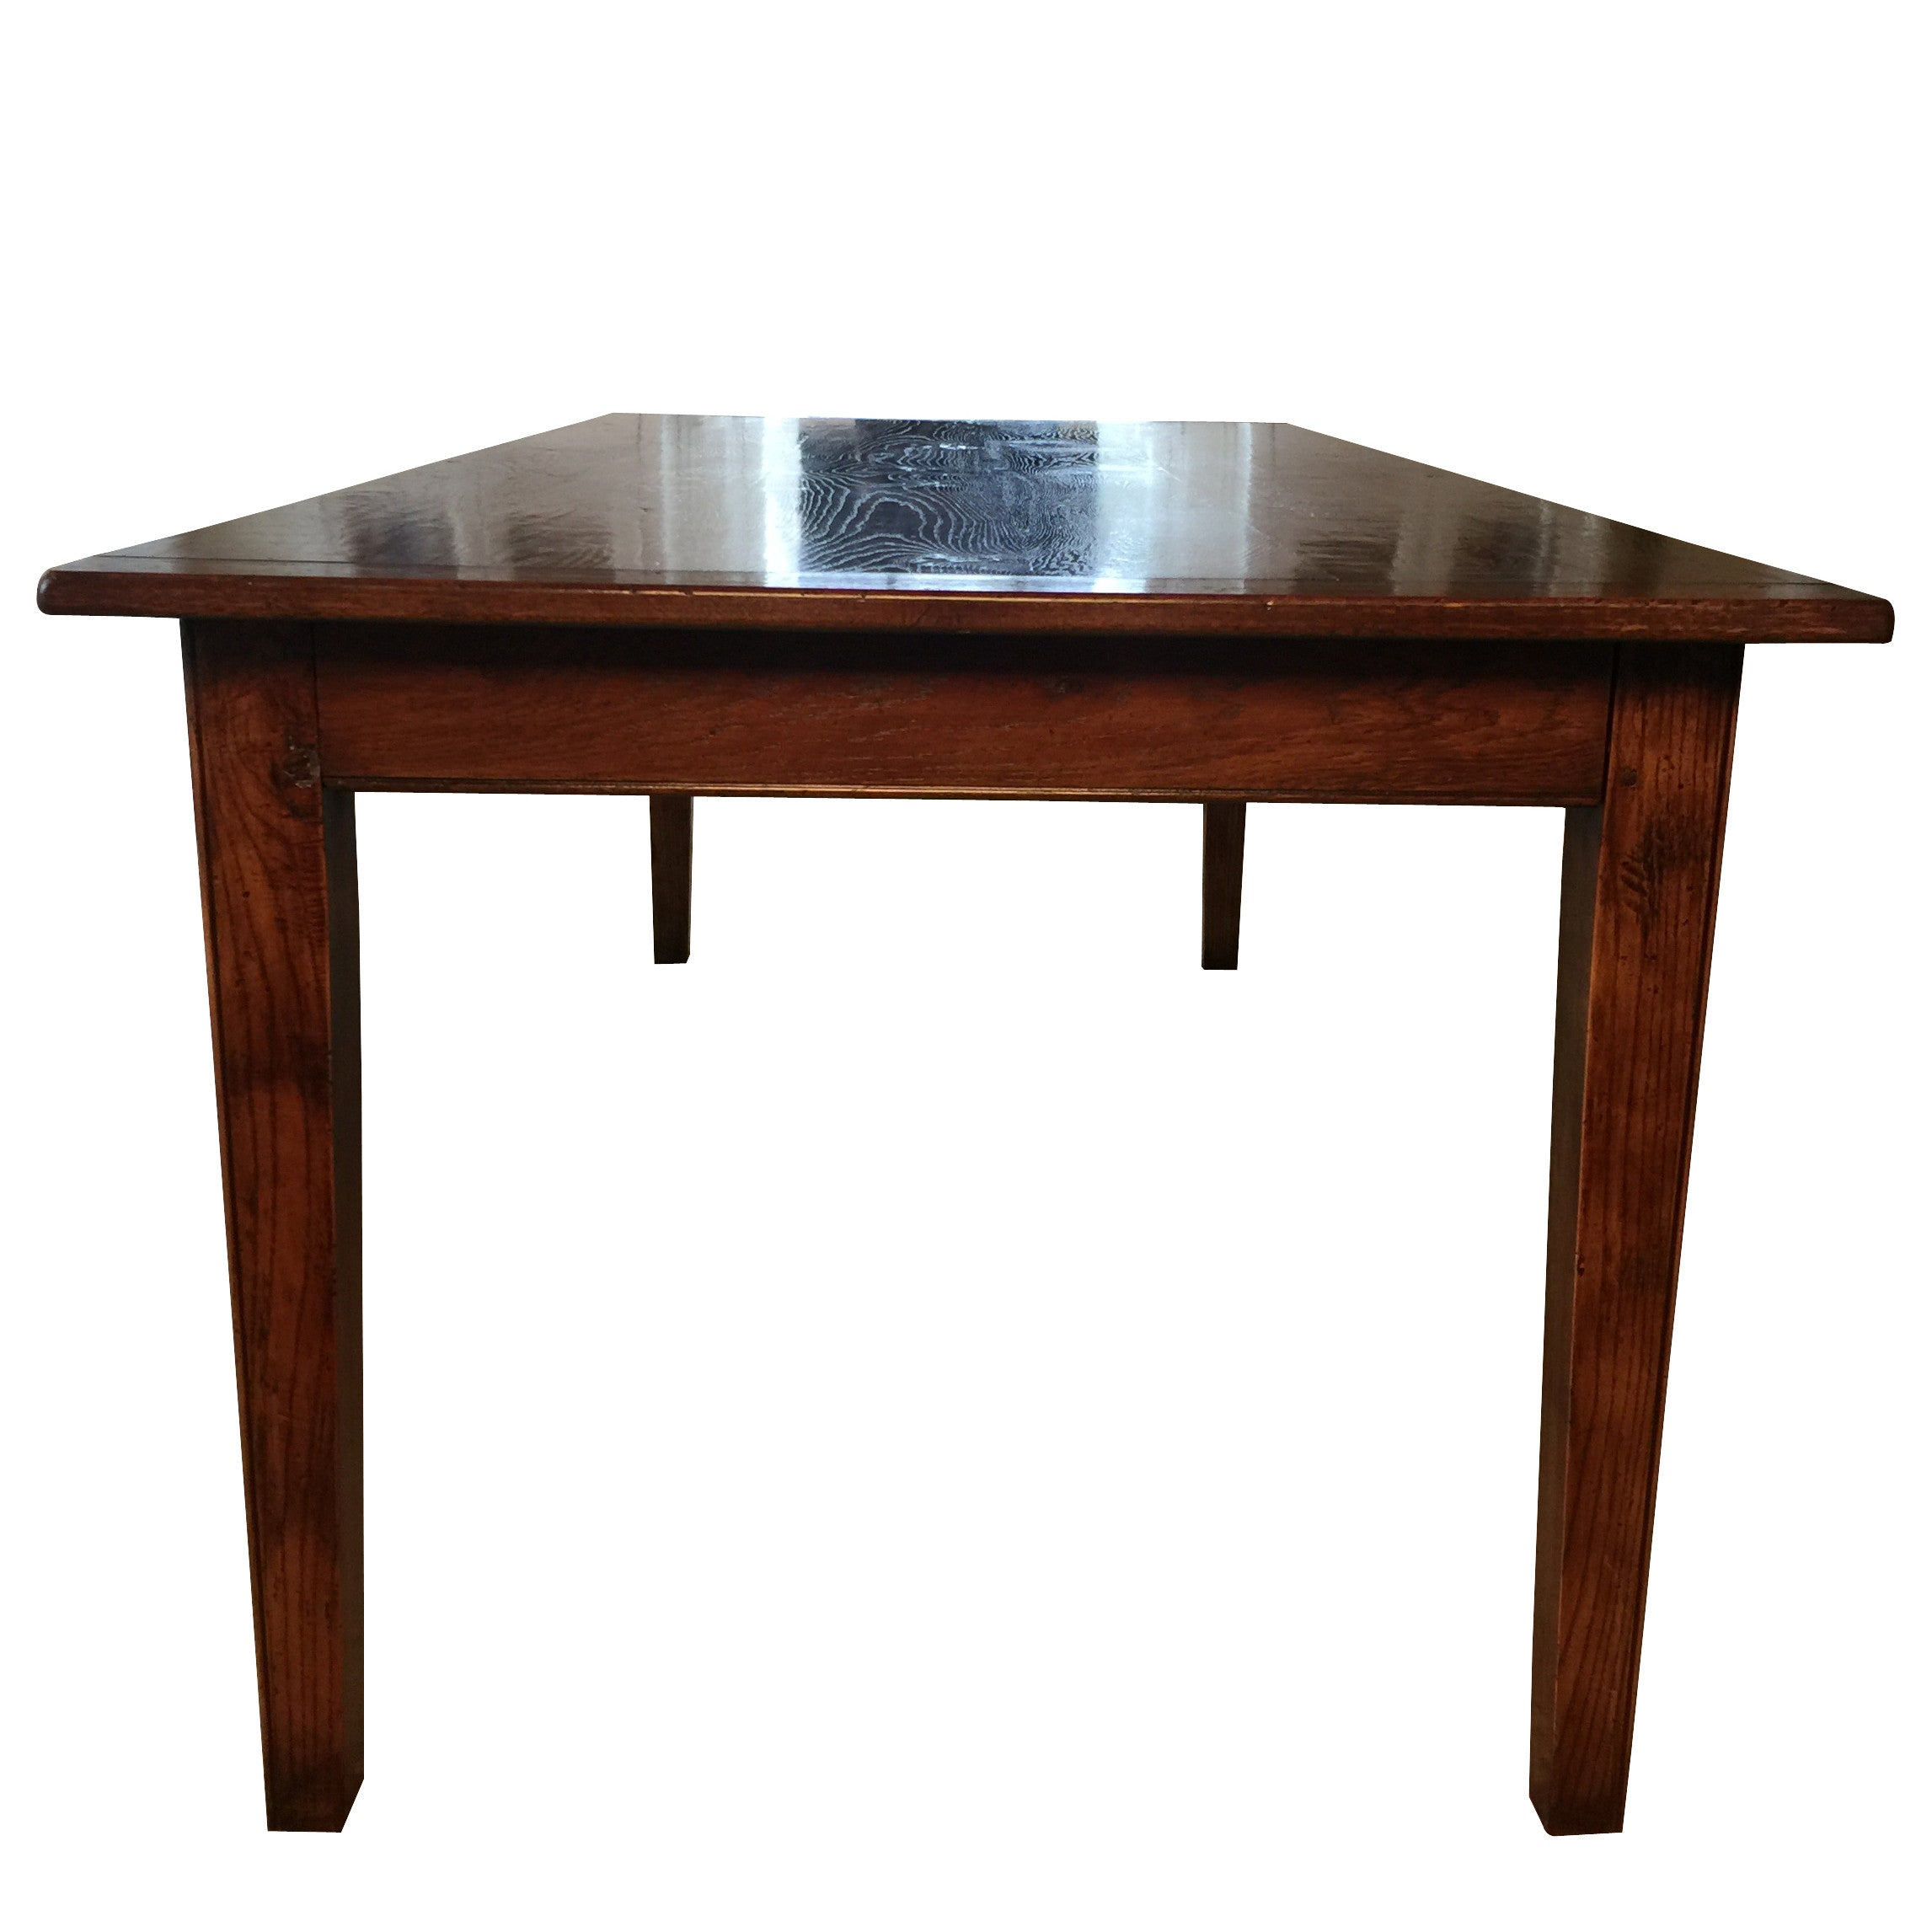 English Farm Table with Expandable Ends